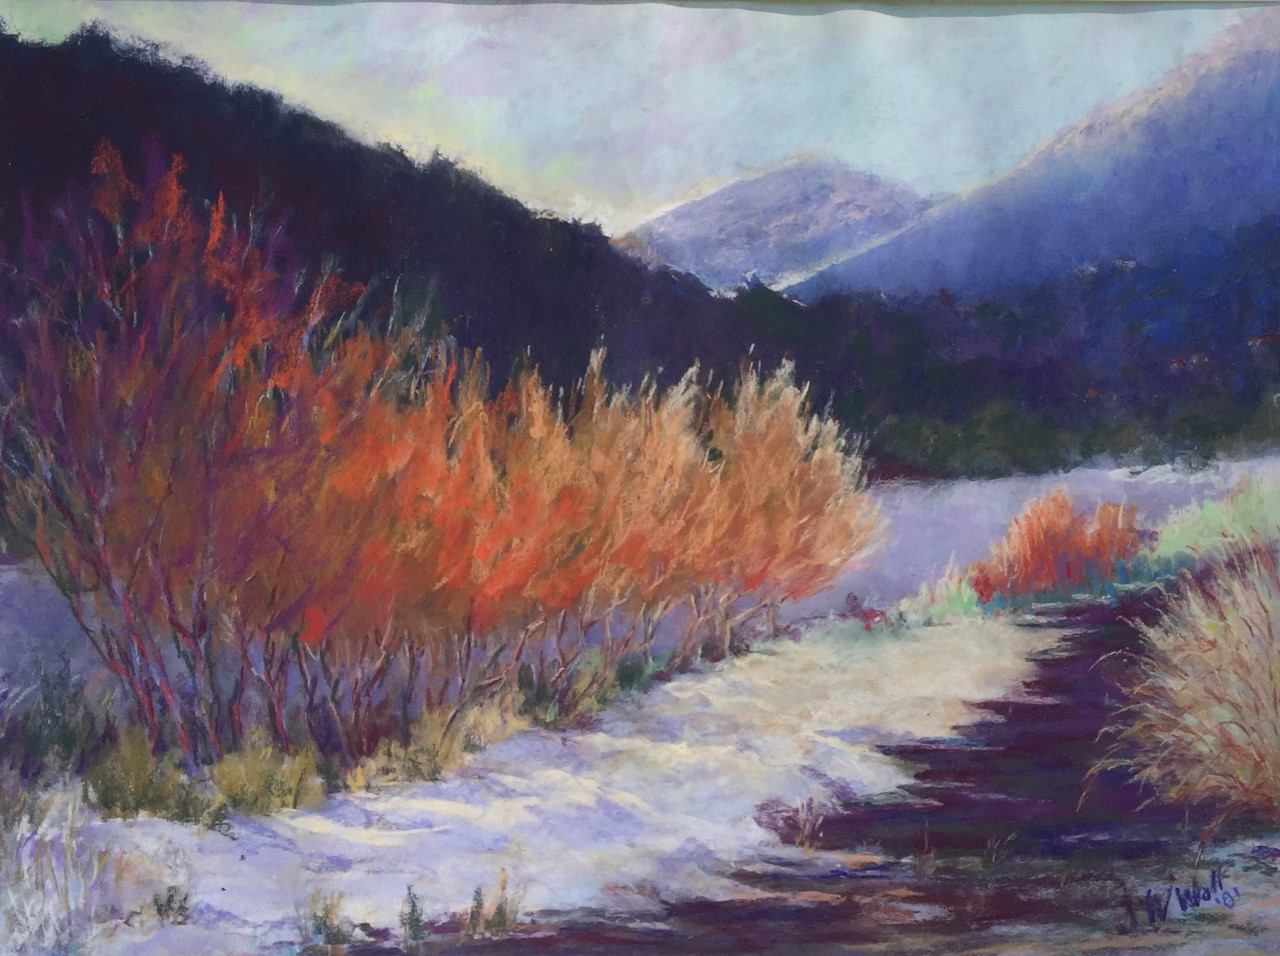 Jane Wright Wolf - Ketchum, Idaho Morning